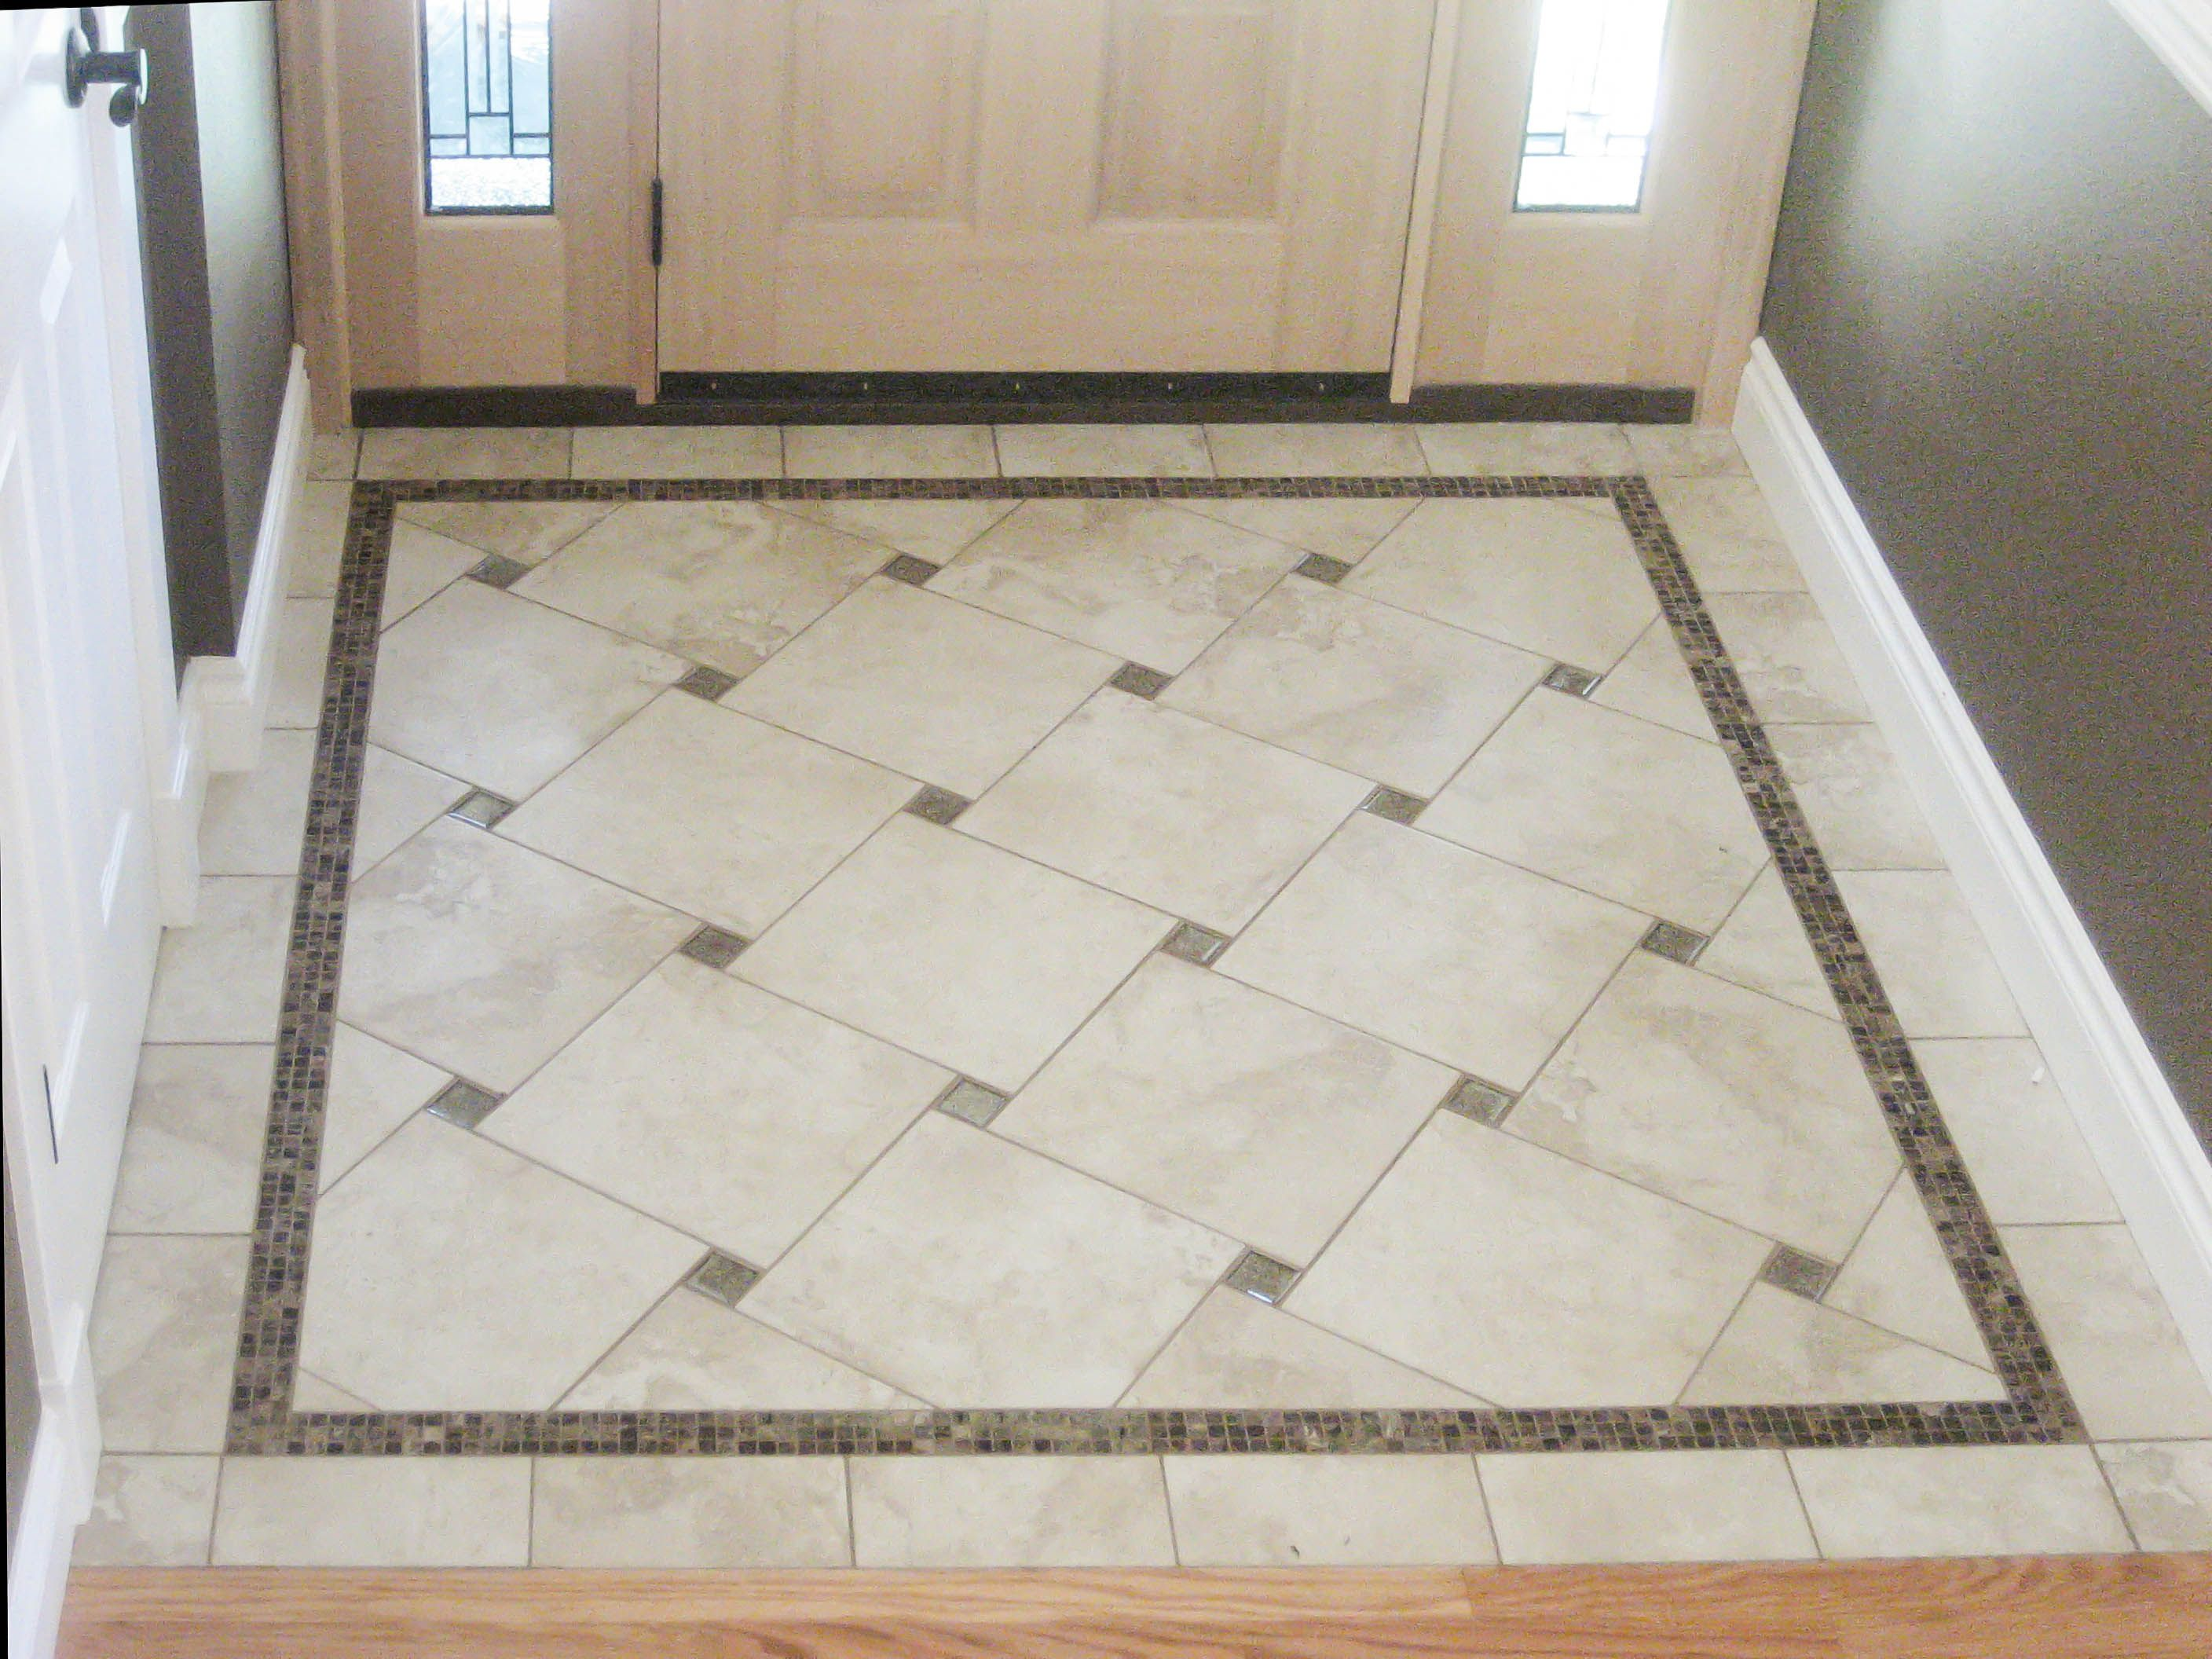 25 best ideas about tile floor designs on pinterest entryway tile floor wood tiles and entryway flooring